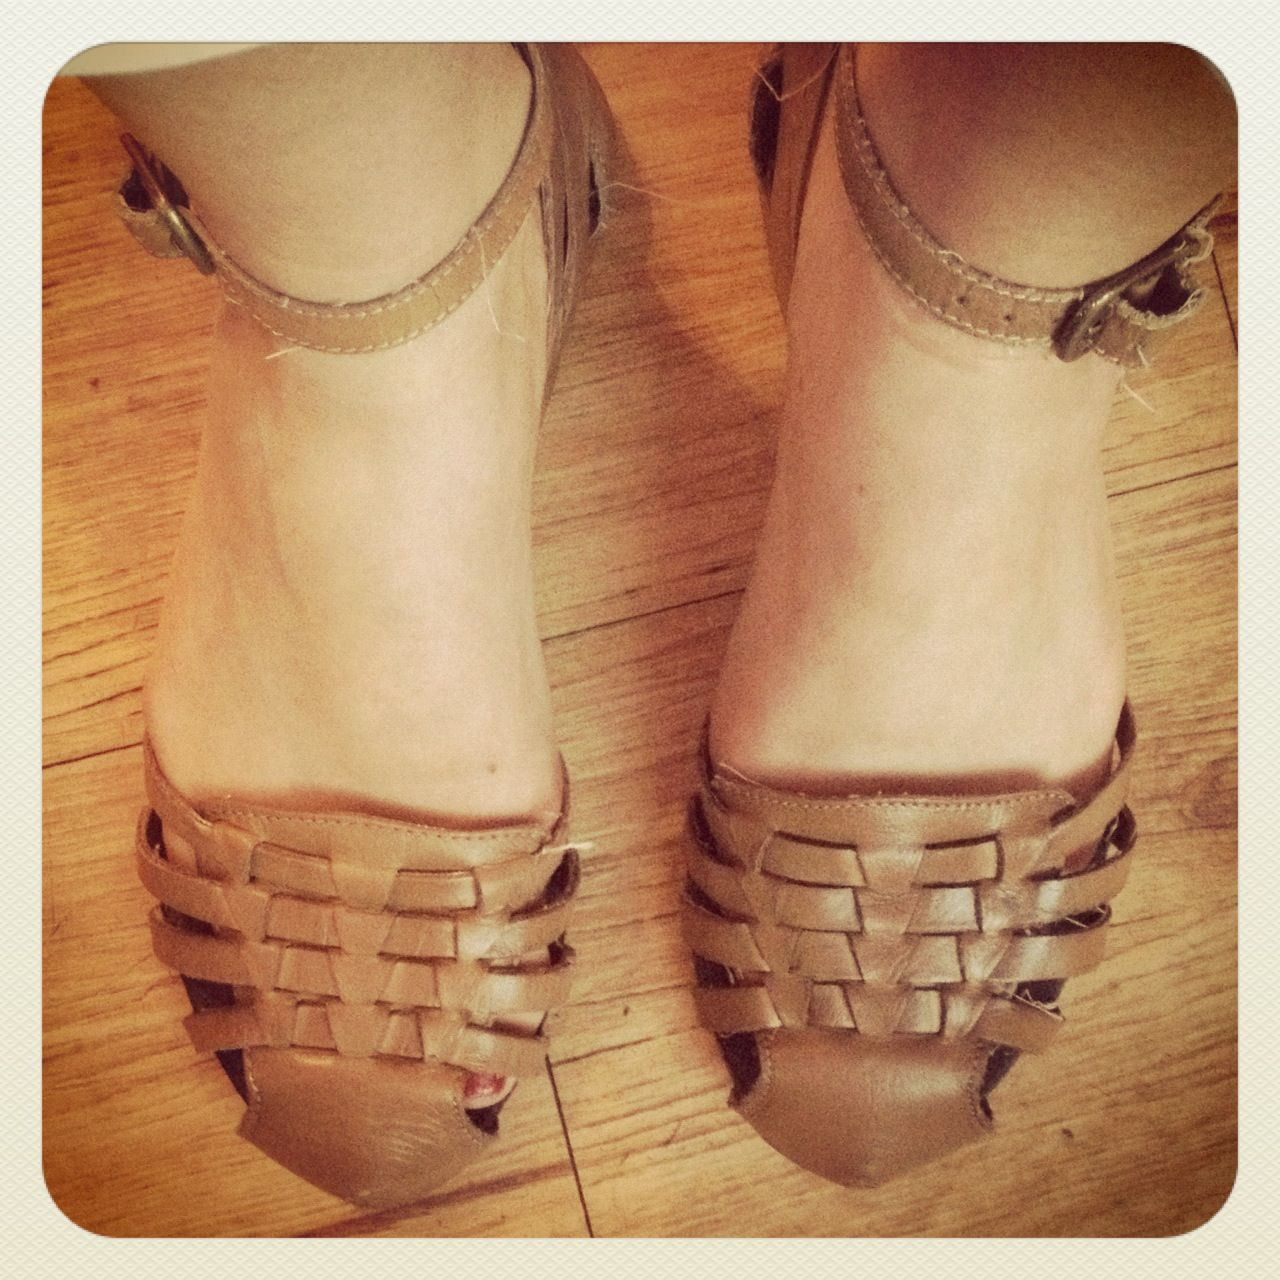 Black enclosed sandals - I Used To Have These Sandals As A Kid When I Grew Out Of Them